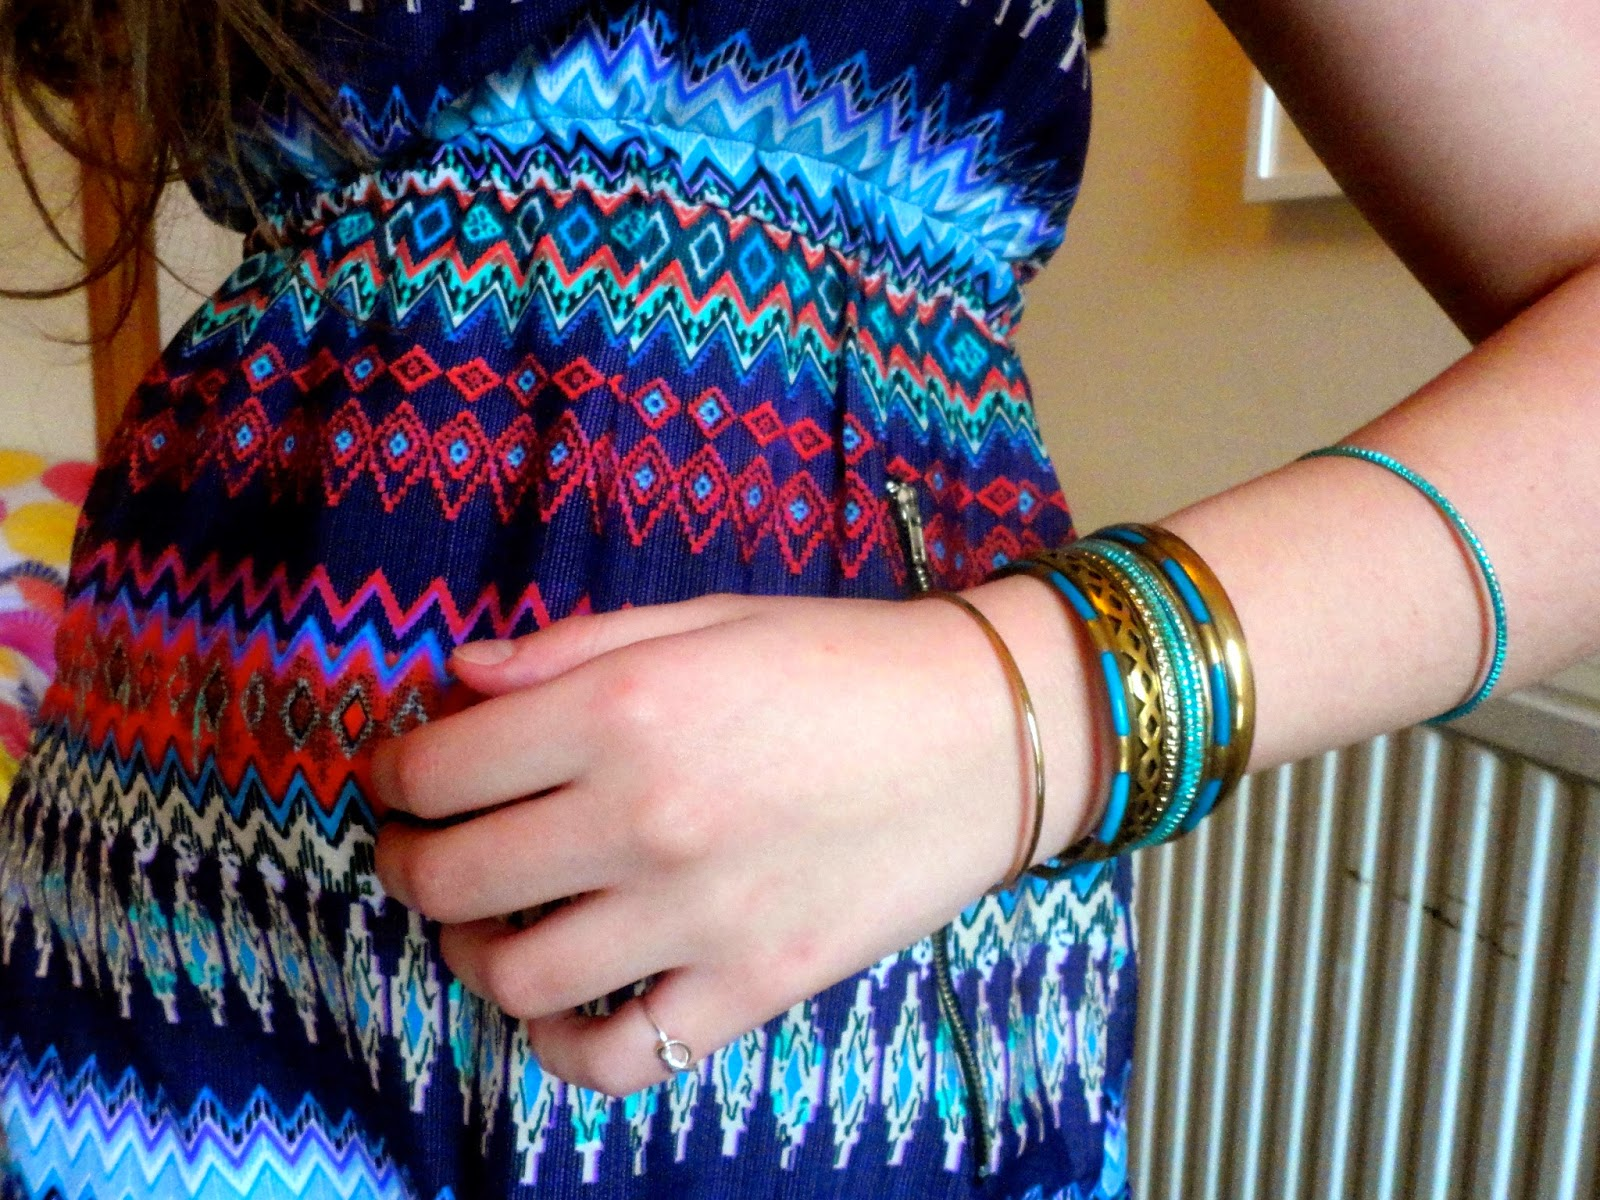 Tropical | outfit jewellery details of blue and gold bangles